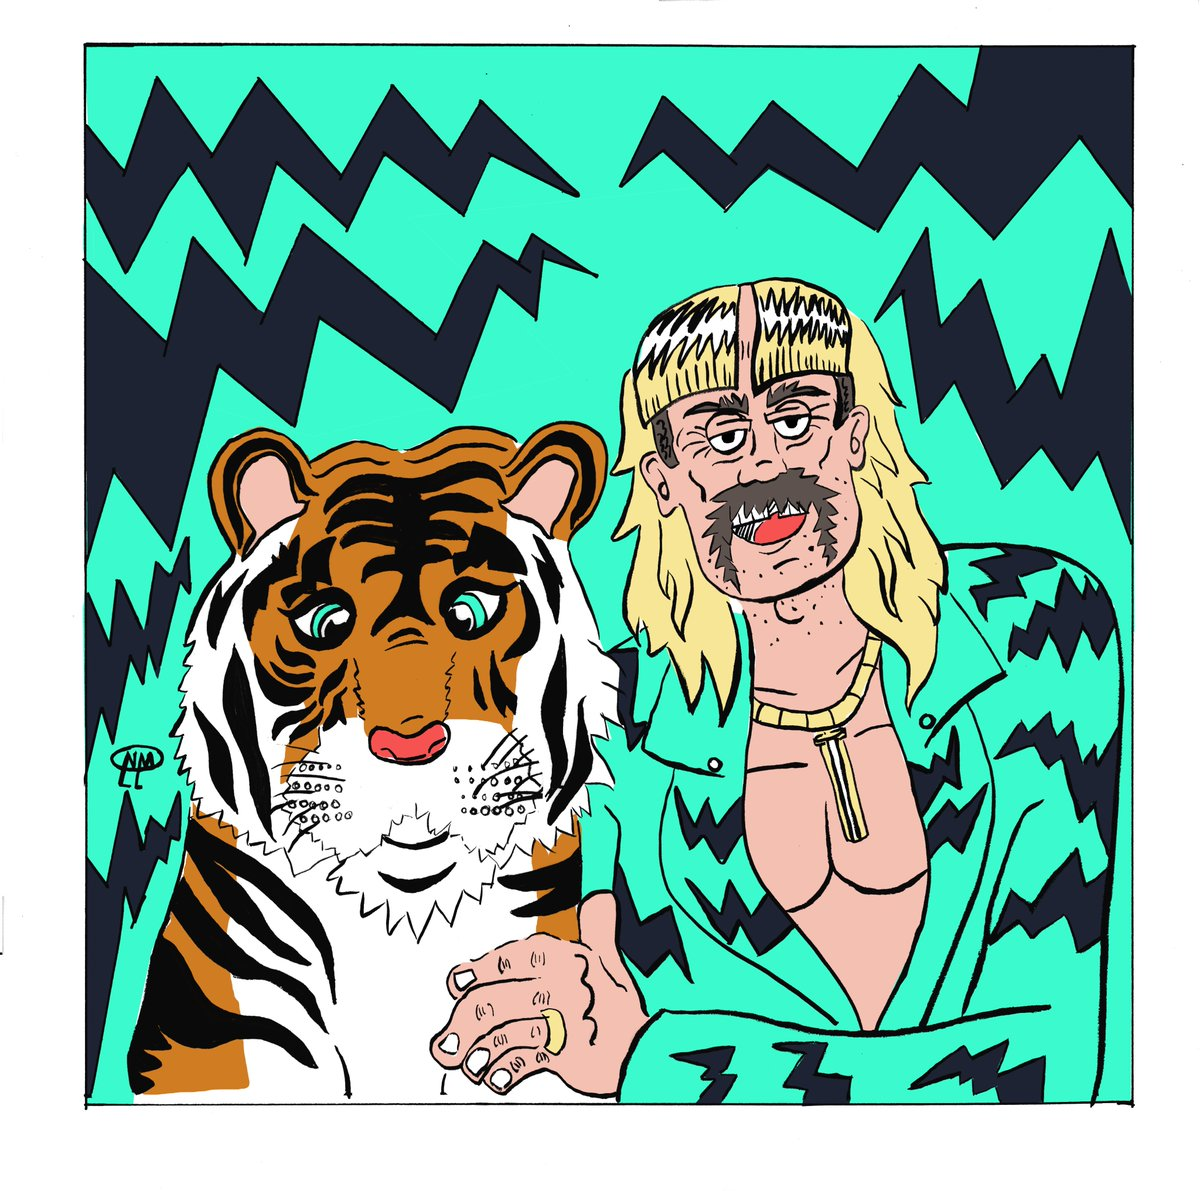 """Tiger King aka """"the level 99 meth dealer"""". The strongest meth dealer you will ever face. #TigerKing pic.twitter.com/HlqzUSZoyF"""